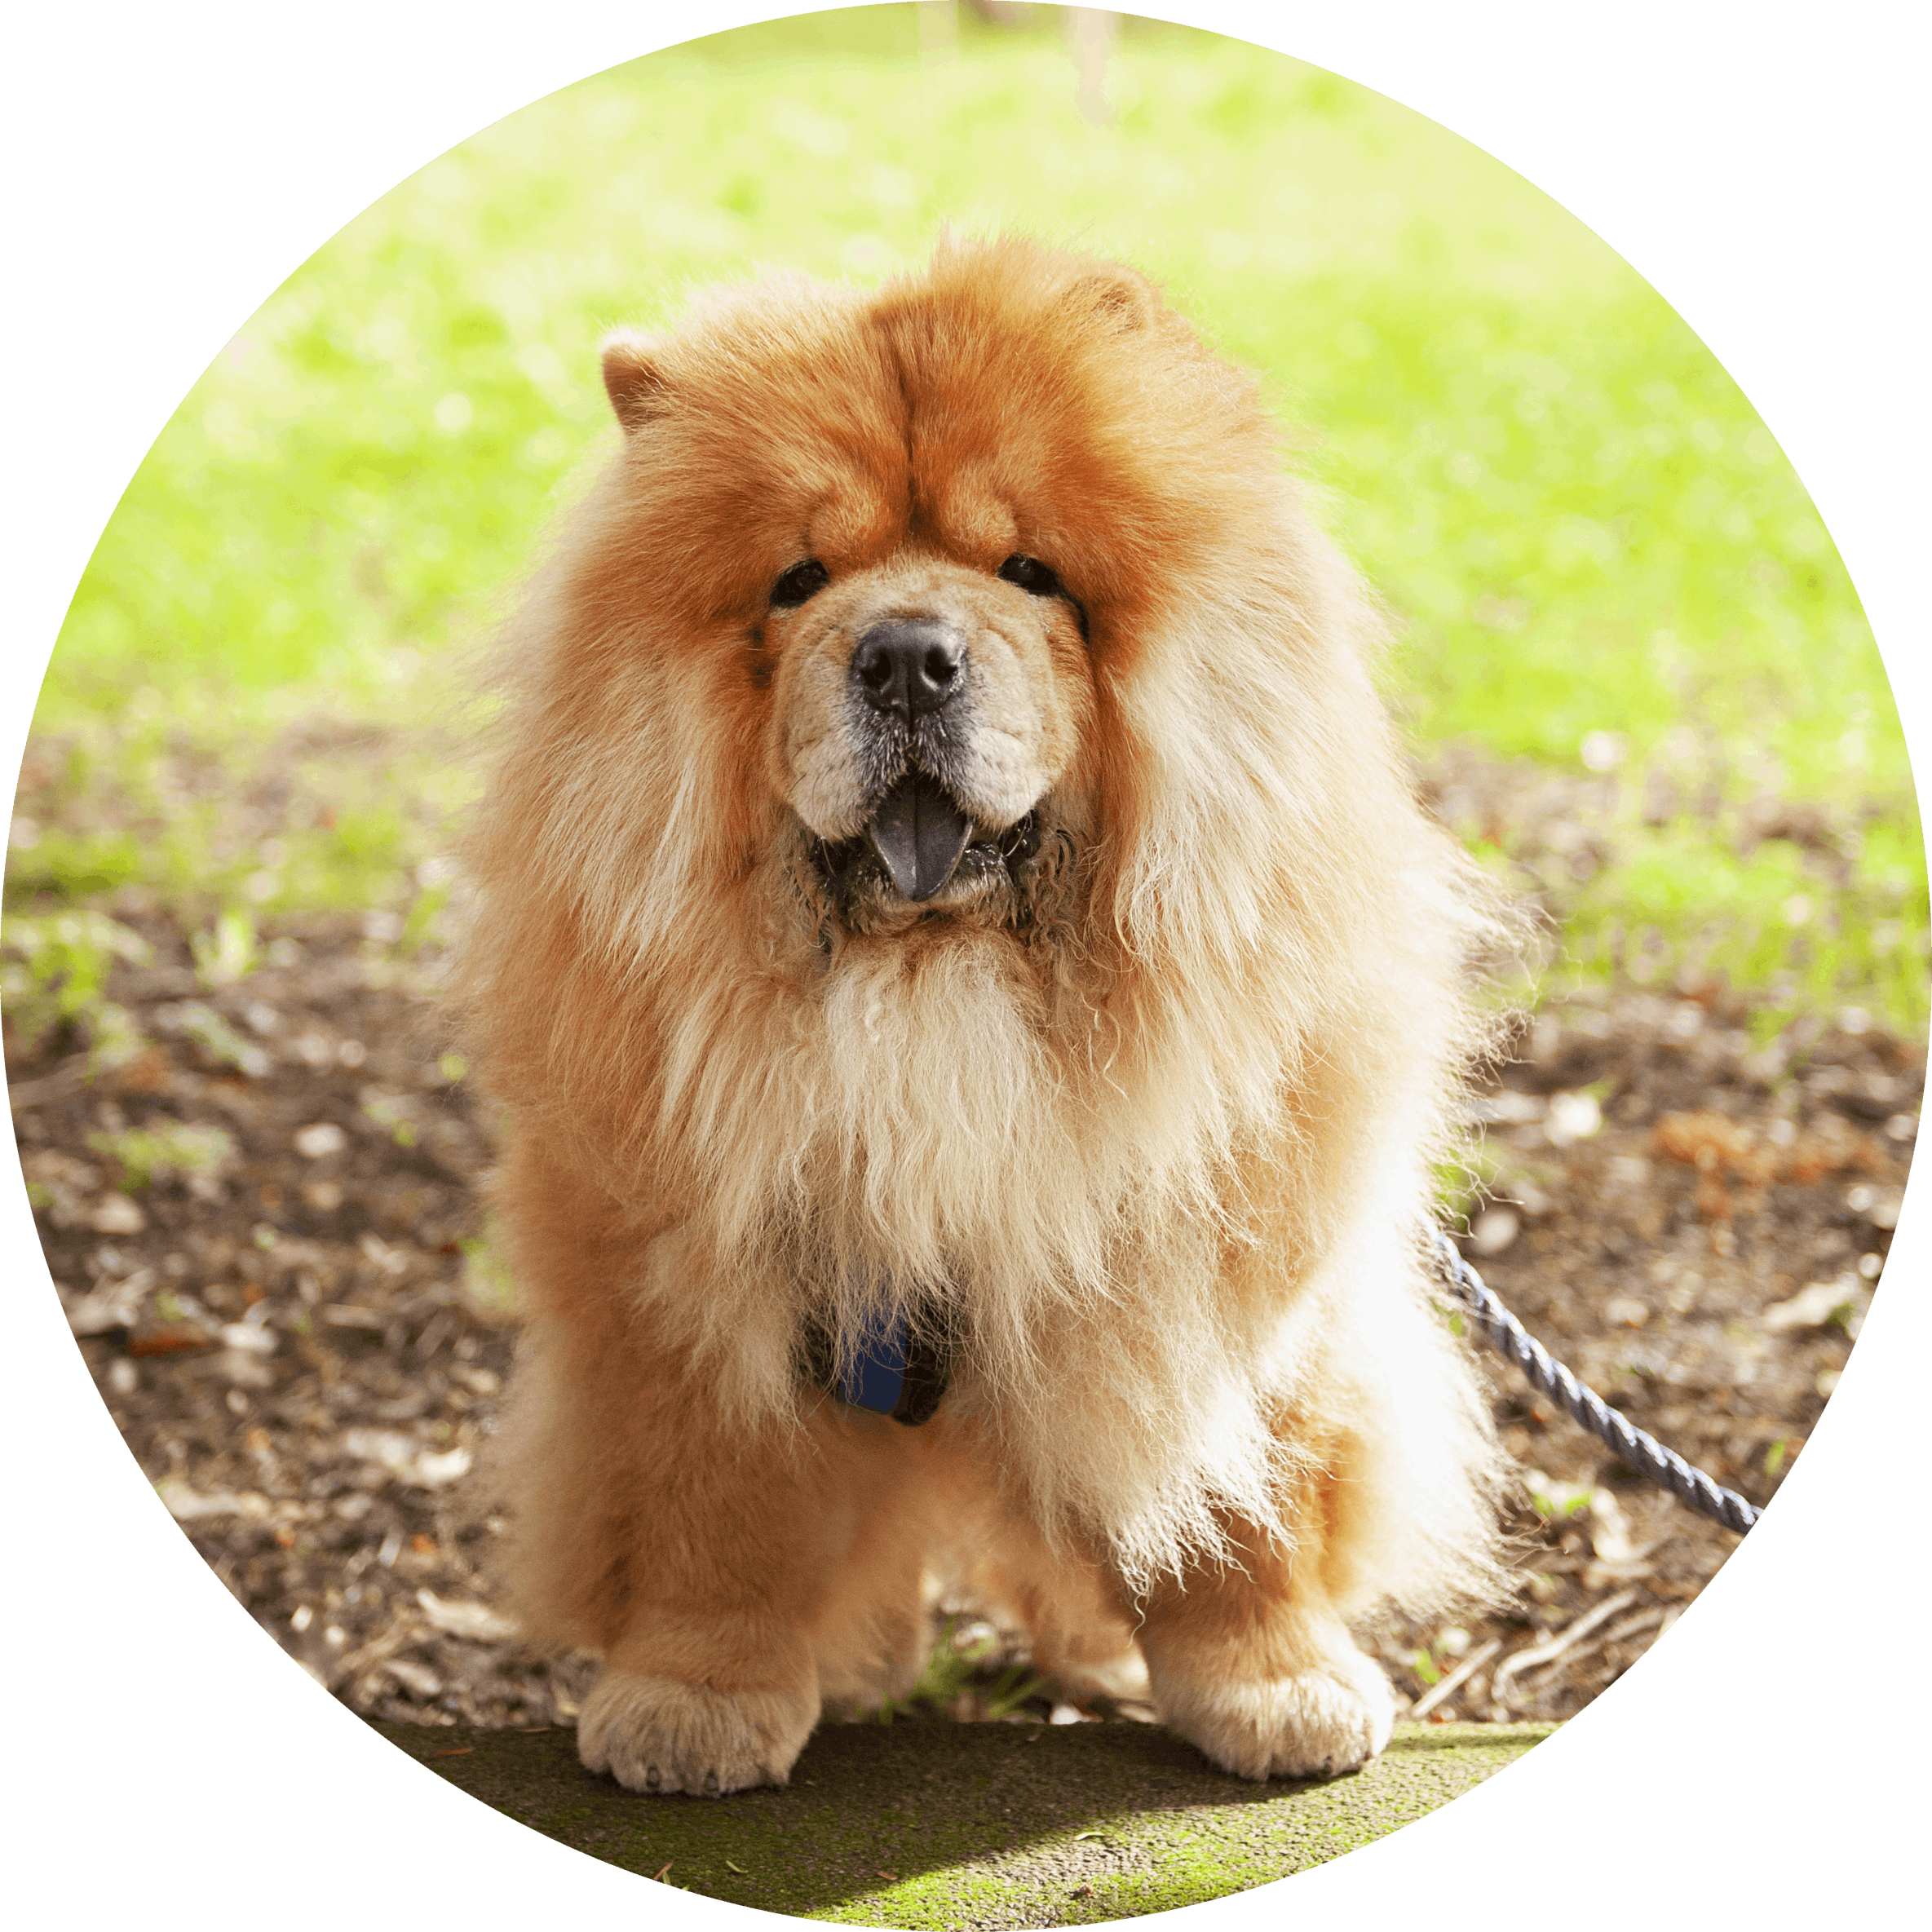 Clover the Chow Chow